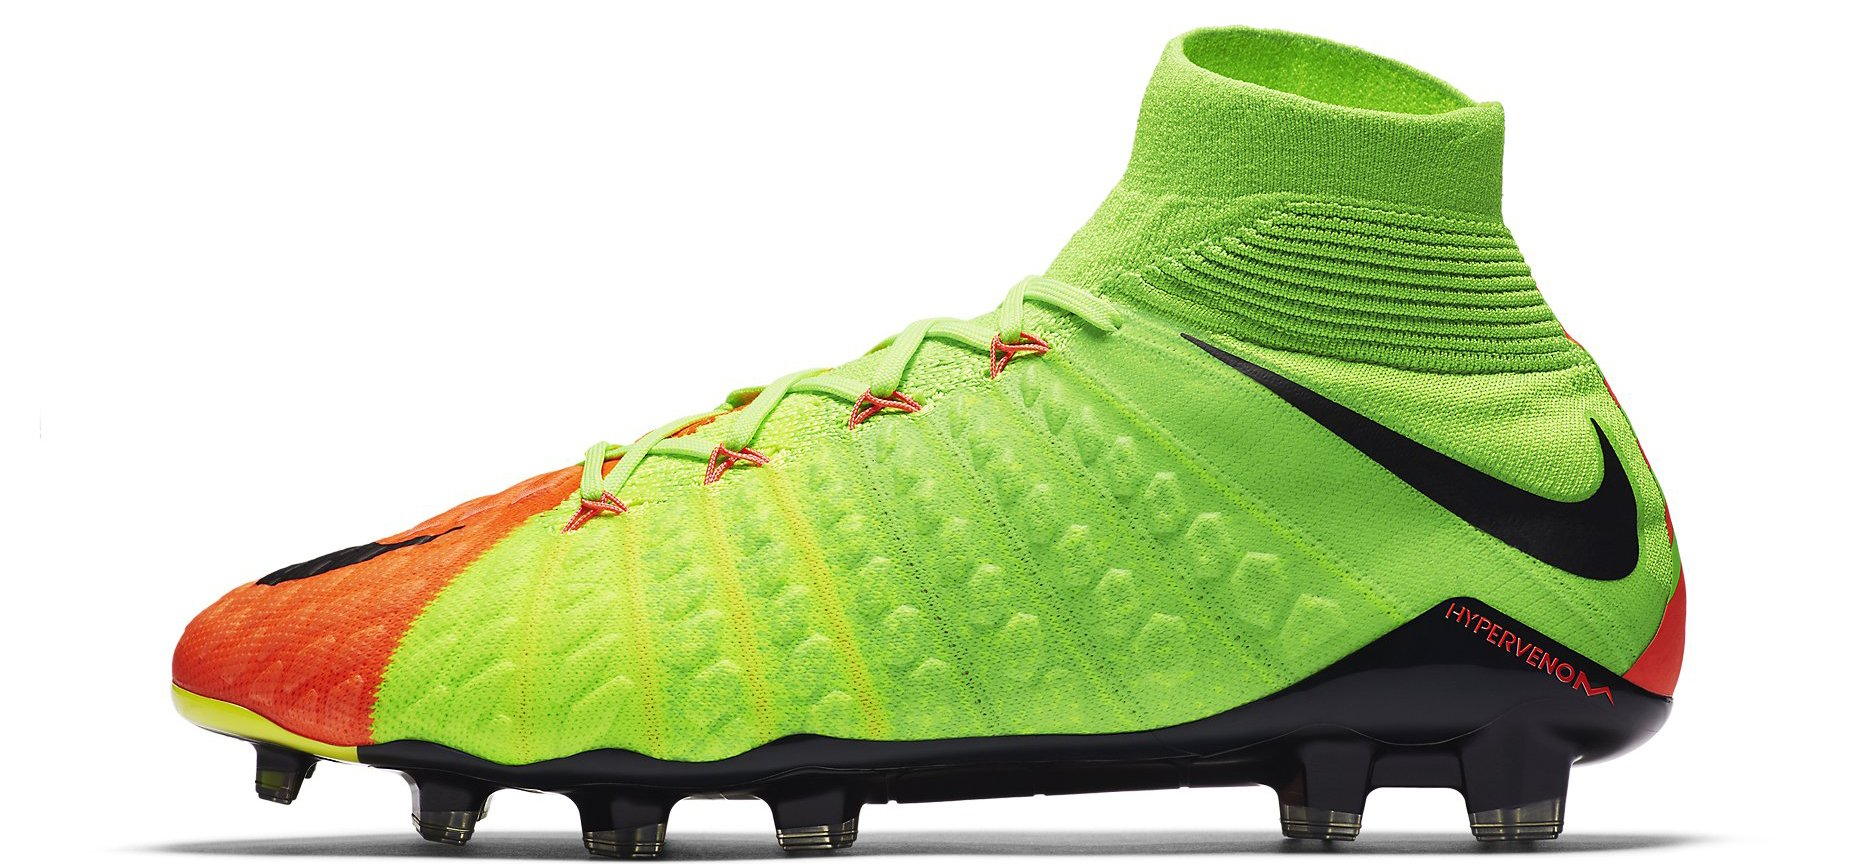 Nike Hypervenom Phantom 3 SG-PRO Anti-Clog Radiation Flare - Electric Green/Black/Hyper Orange